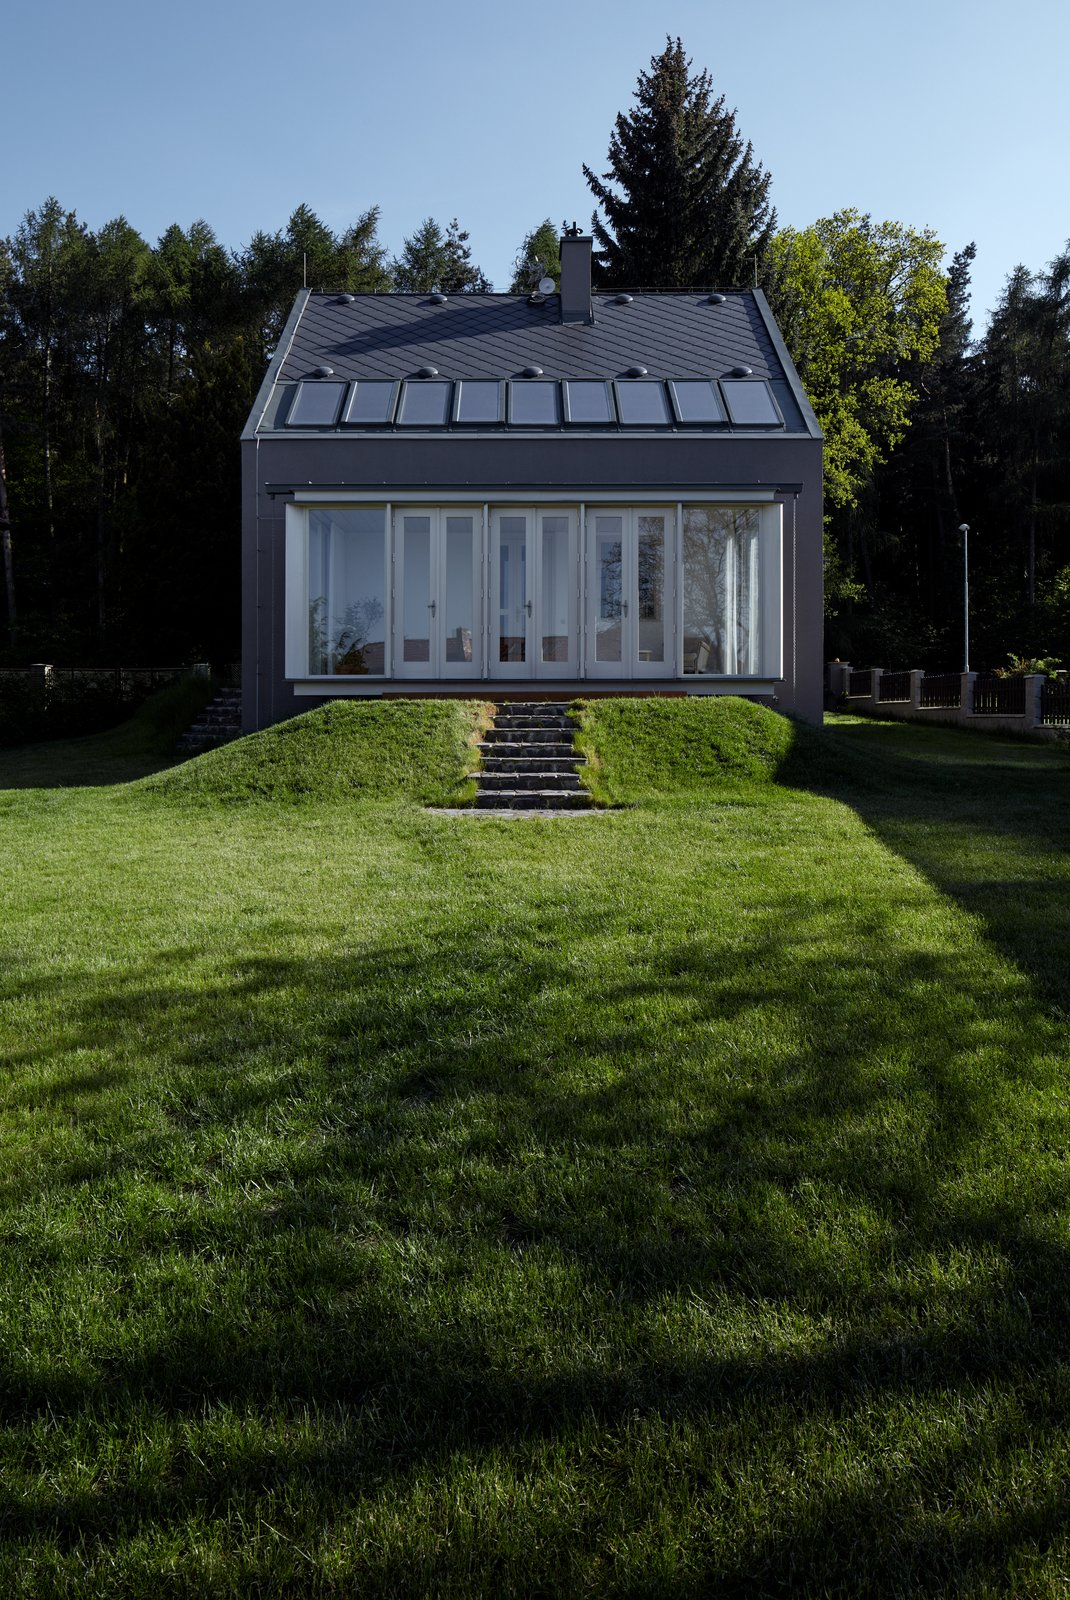 Outdoor, Back Yard, Grass, and Trees  House by the Forrest by BoysPlayNice Photography & Concept